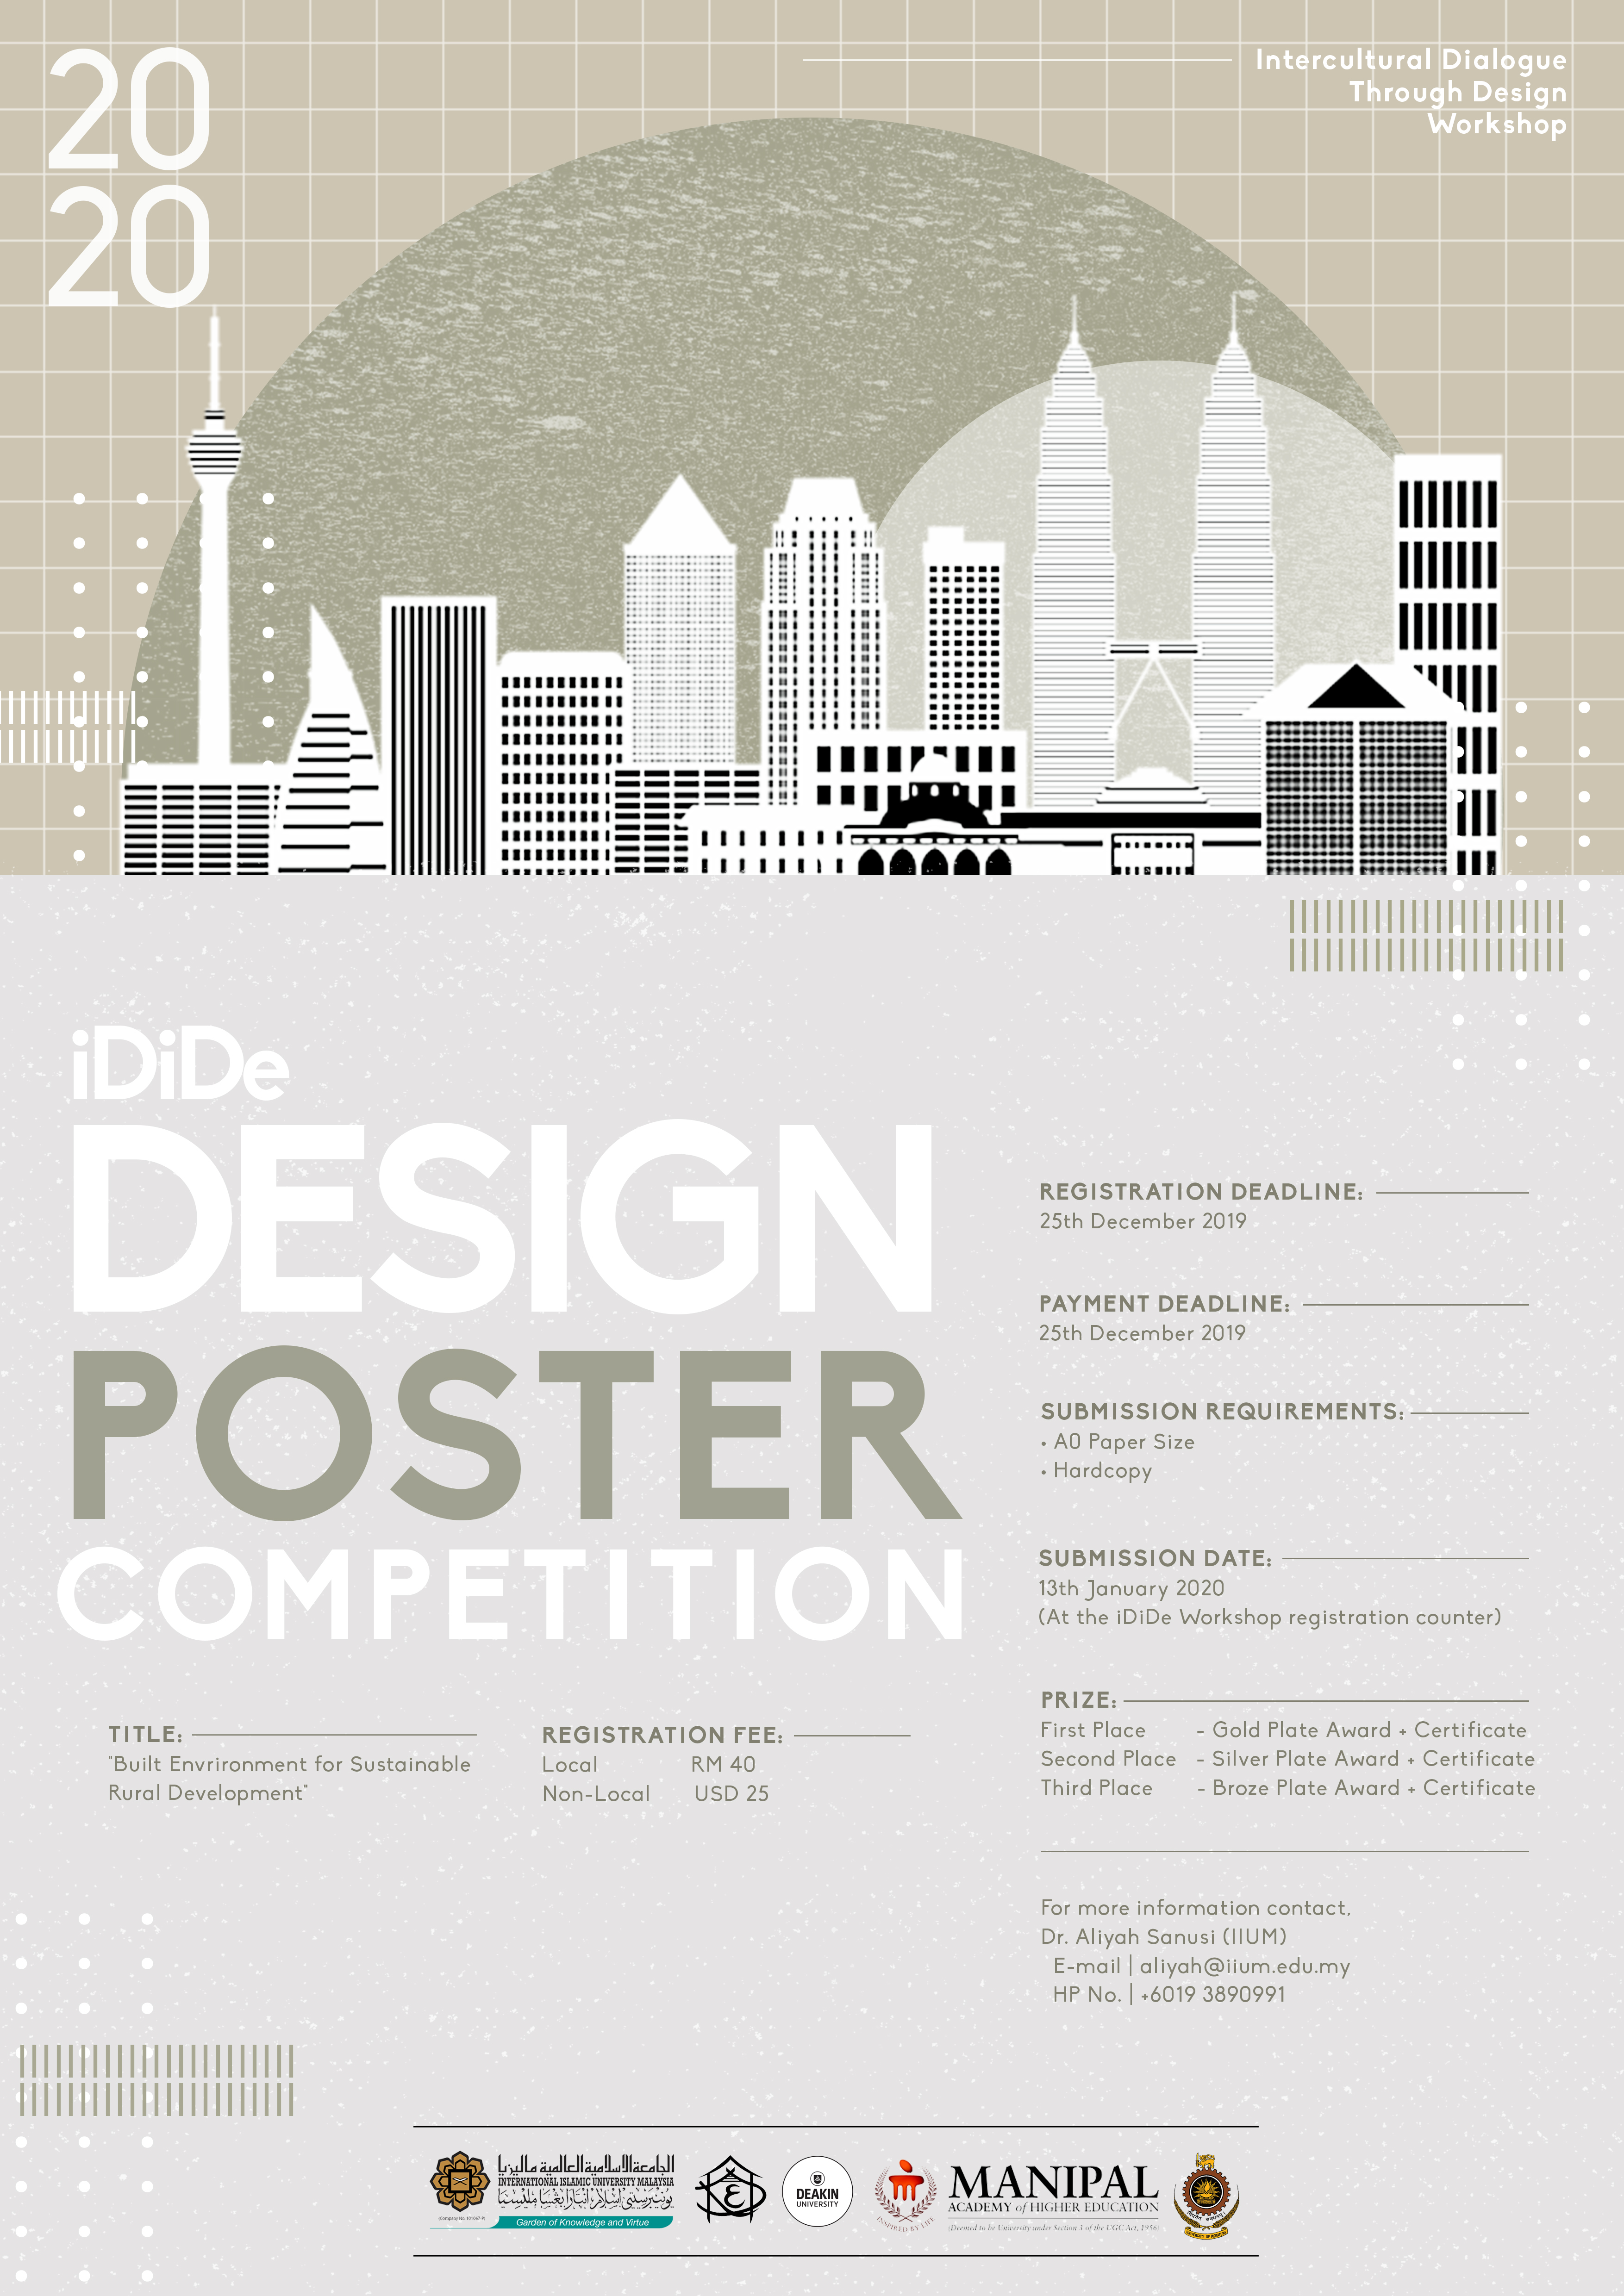 iDiDe 2020 - Design Poster Competition